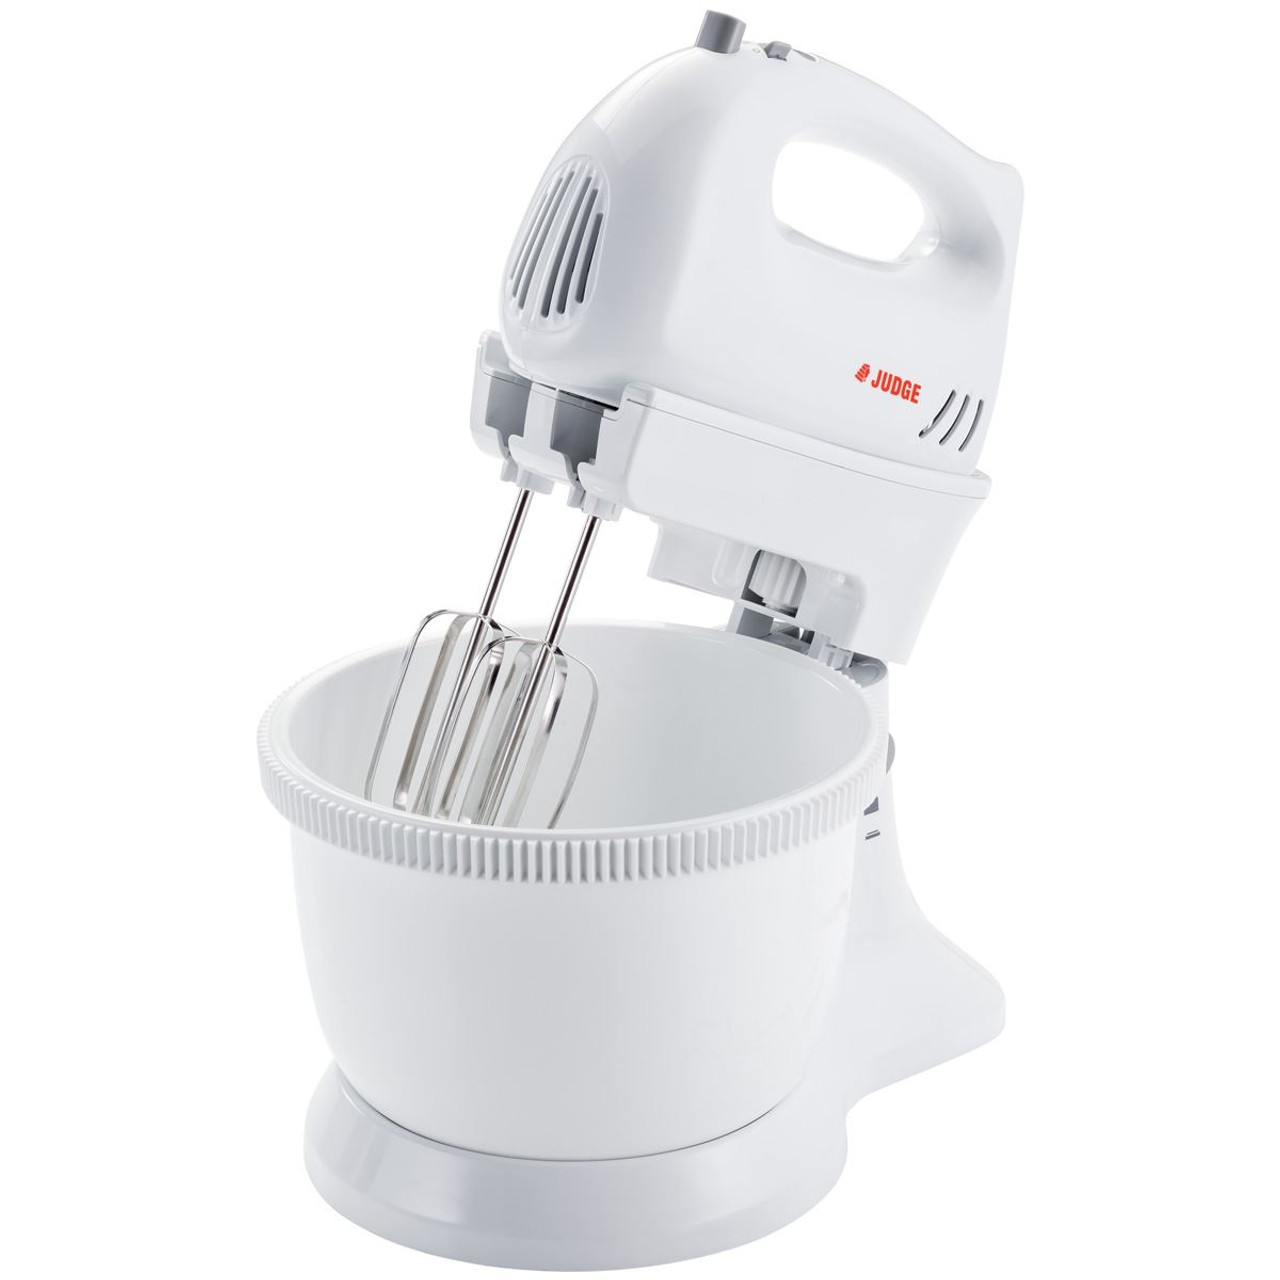 Judge Electricals Twin Blade Stand Mixer